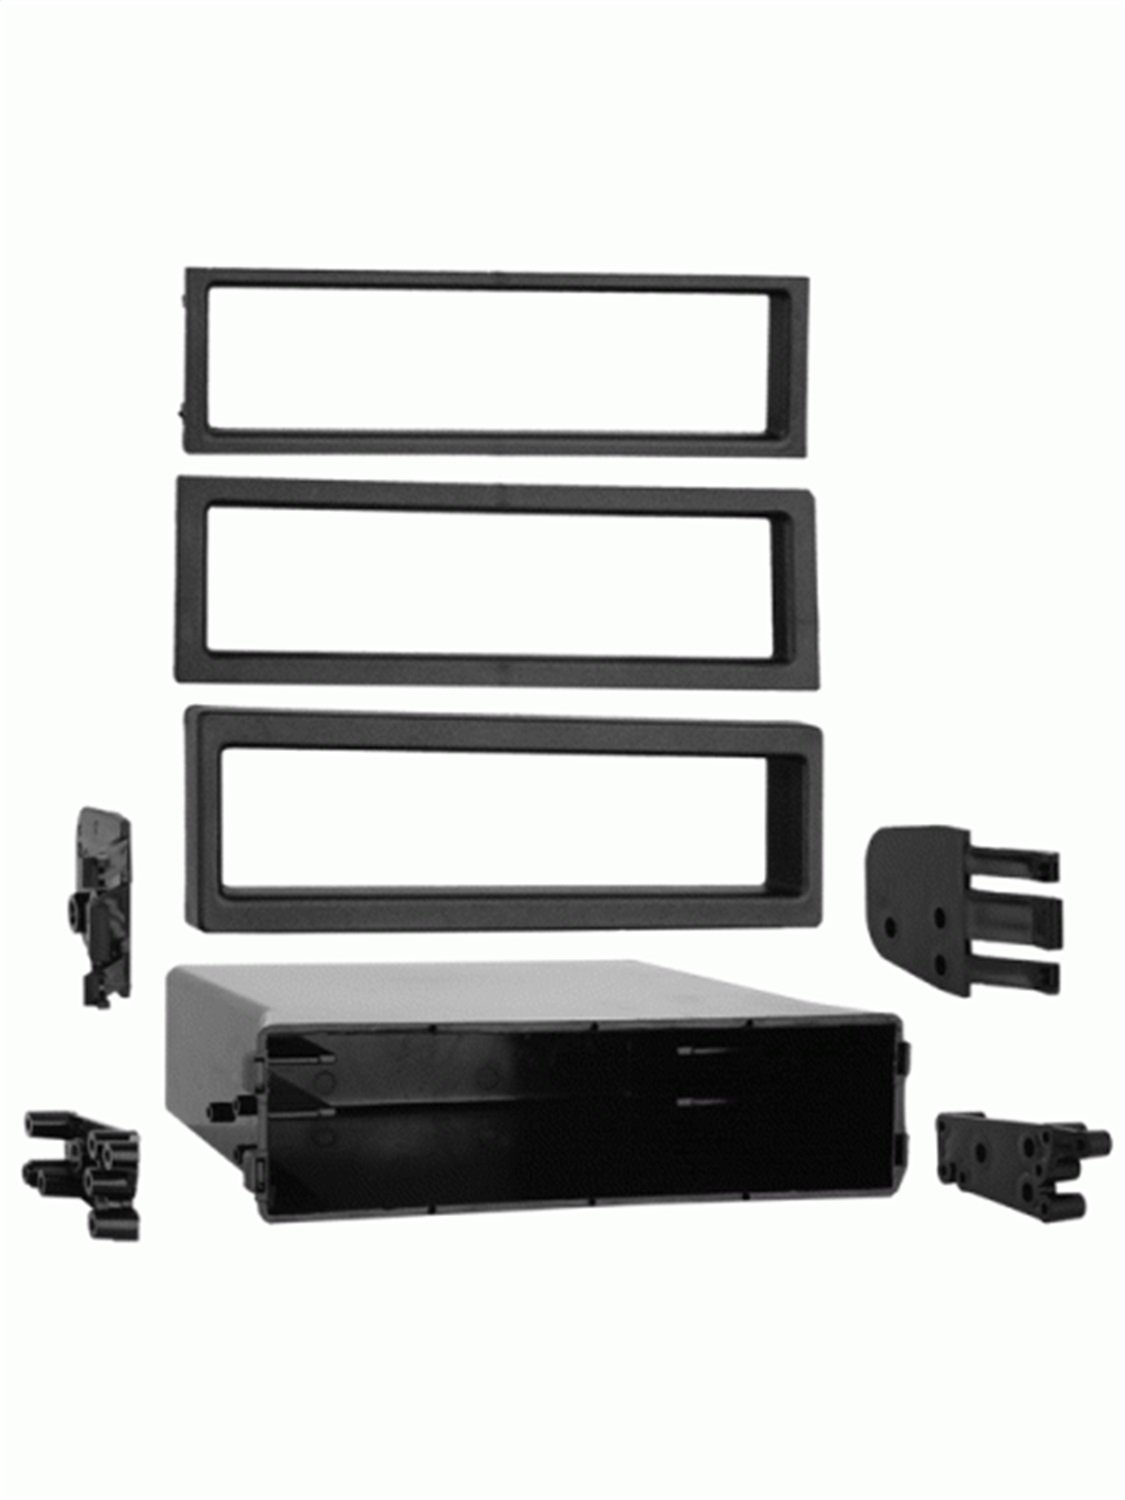 Metra 88-00-9000 Single DIN Pocket Radio Installation Kit For Select 1982-2004 Ford/Mazda/Nissan/Toyota/Volvo Vehicles Metra Electronics Corporation